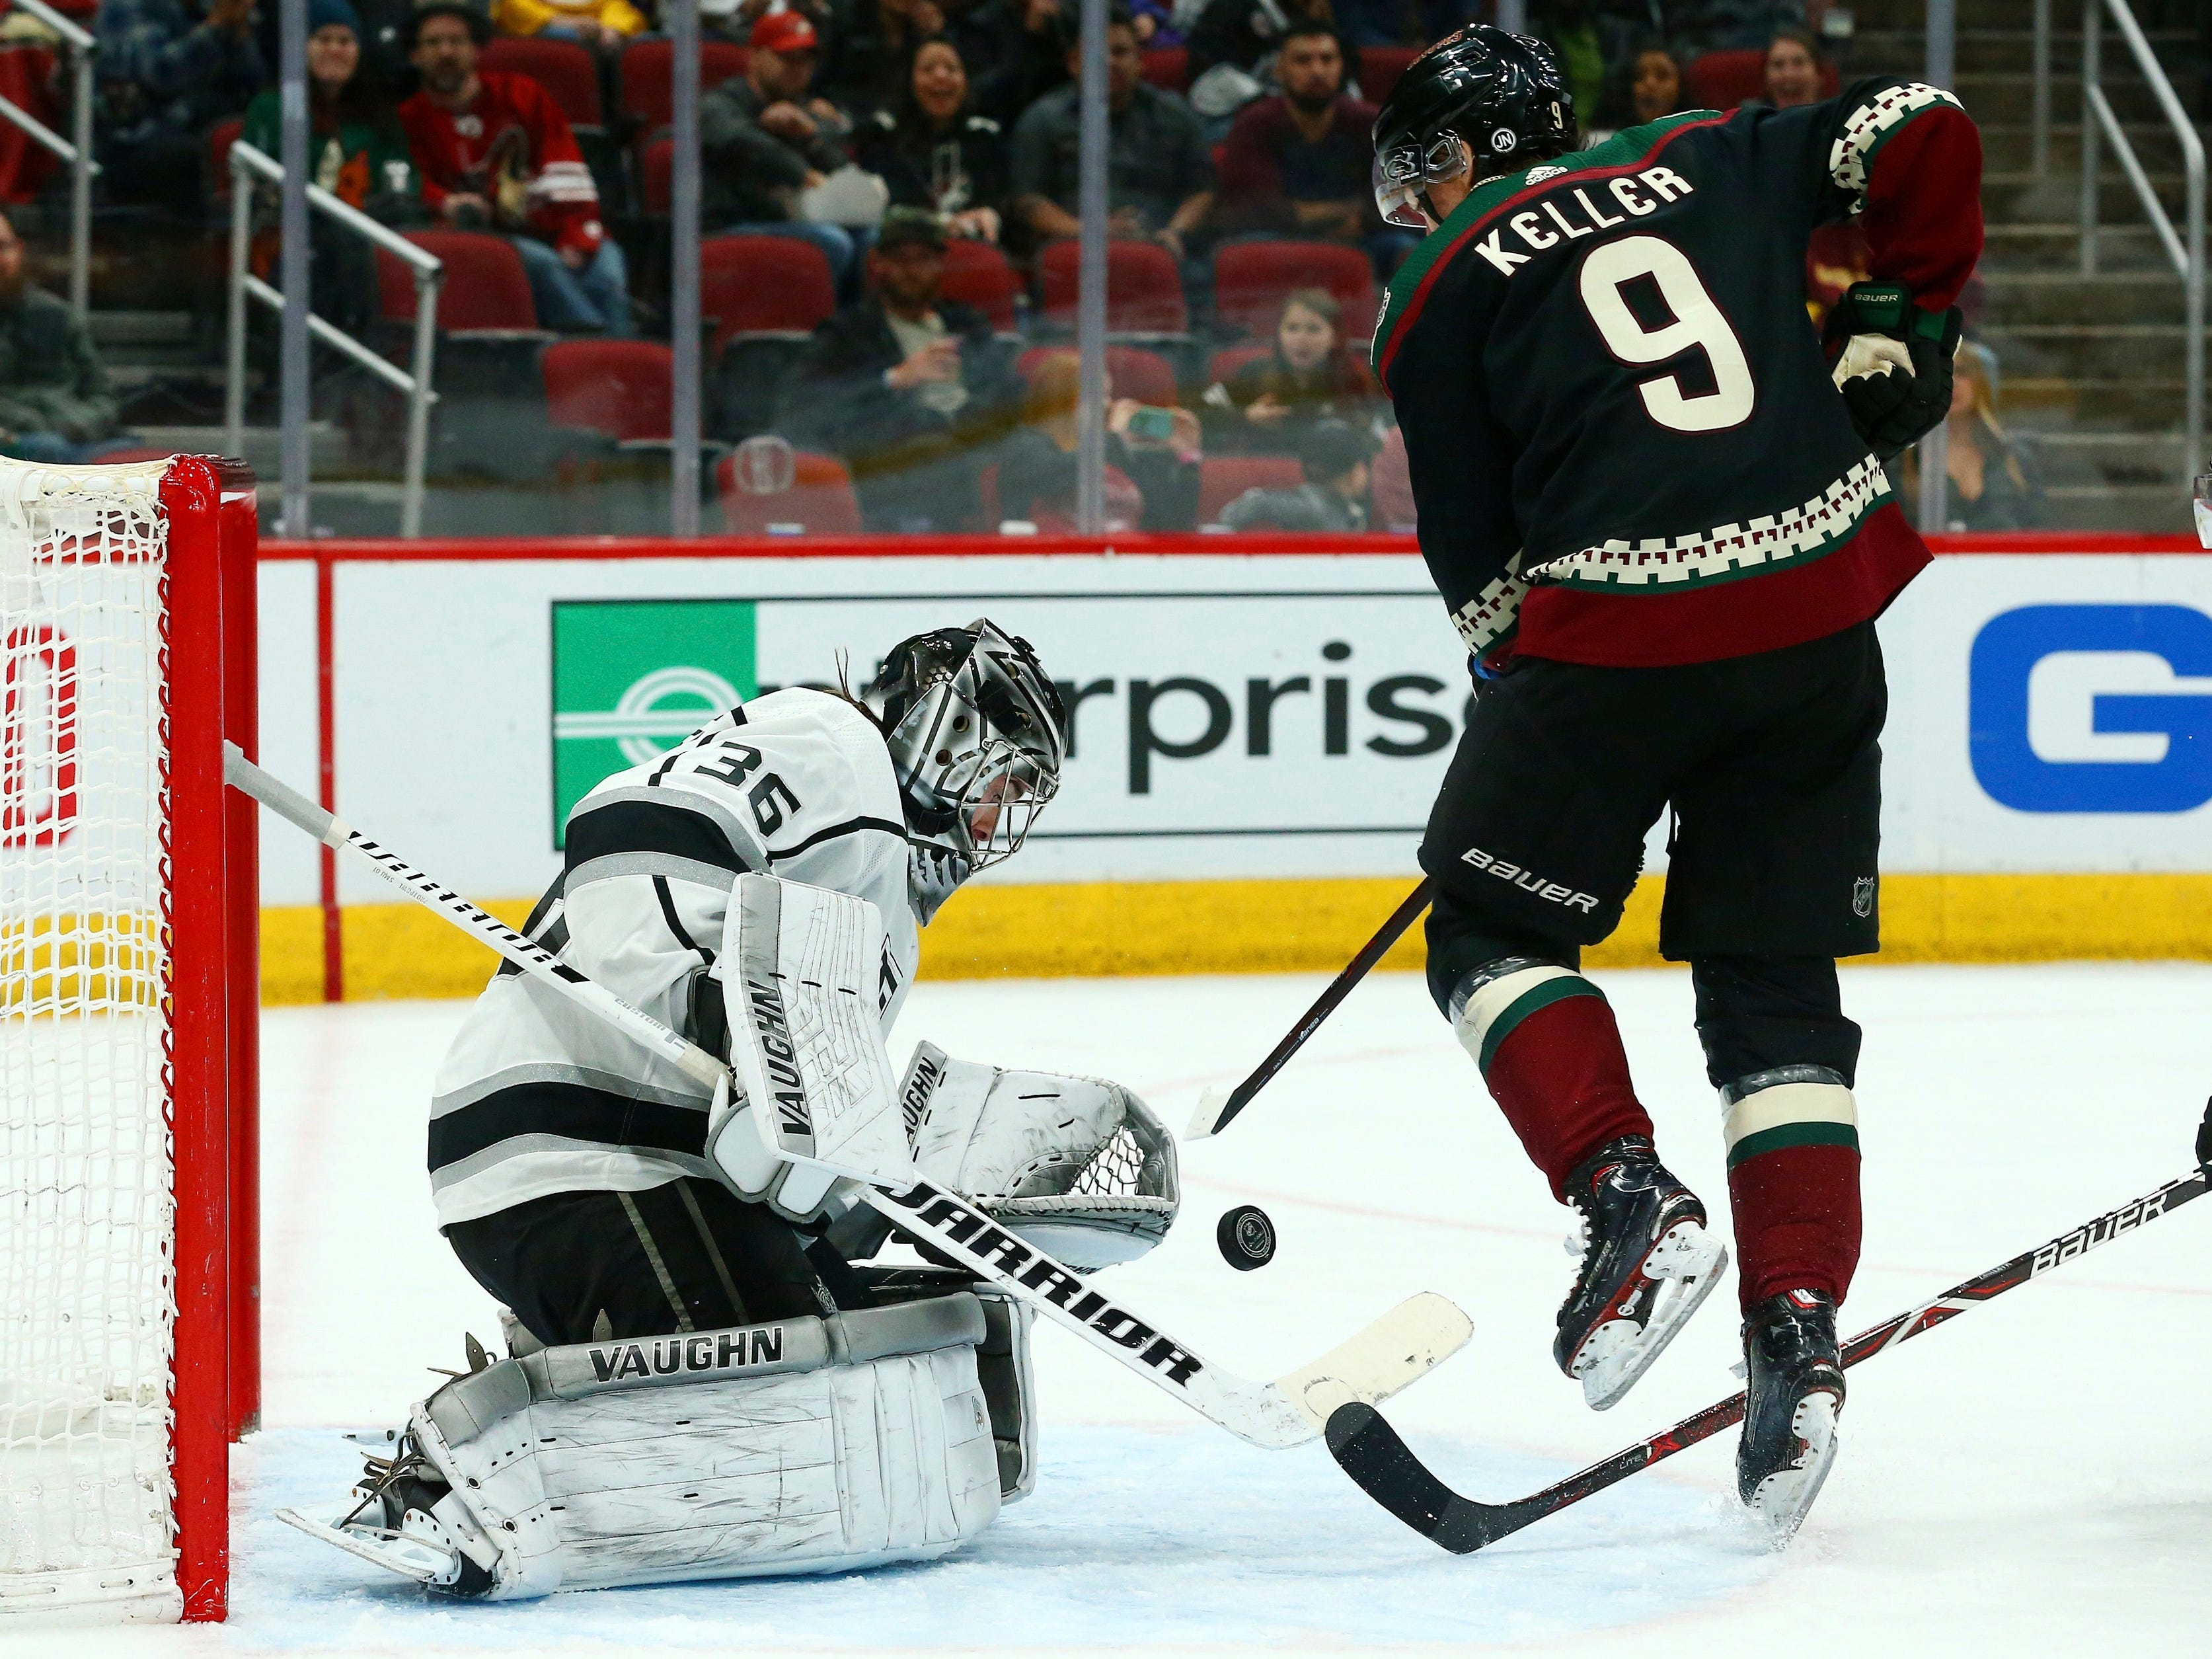 Los Angeles Kings goaltender Jack Campbell (36) makes a save on a shot by Arizona Coyotes center Clayton Keller (9) during the second period of an NHL hockey game Saturday, March 9, 2019, in Glendale, Ariz.